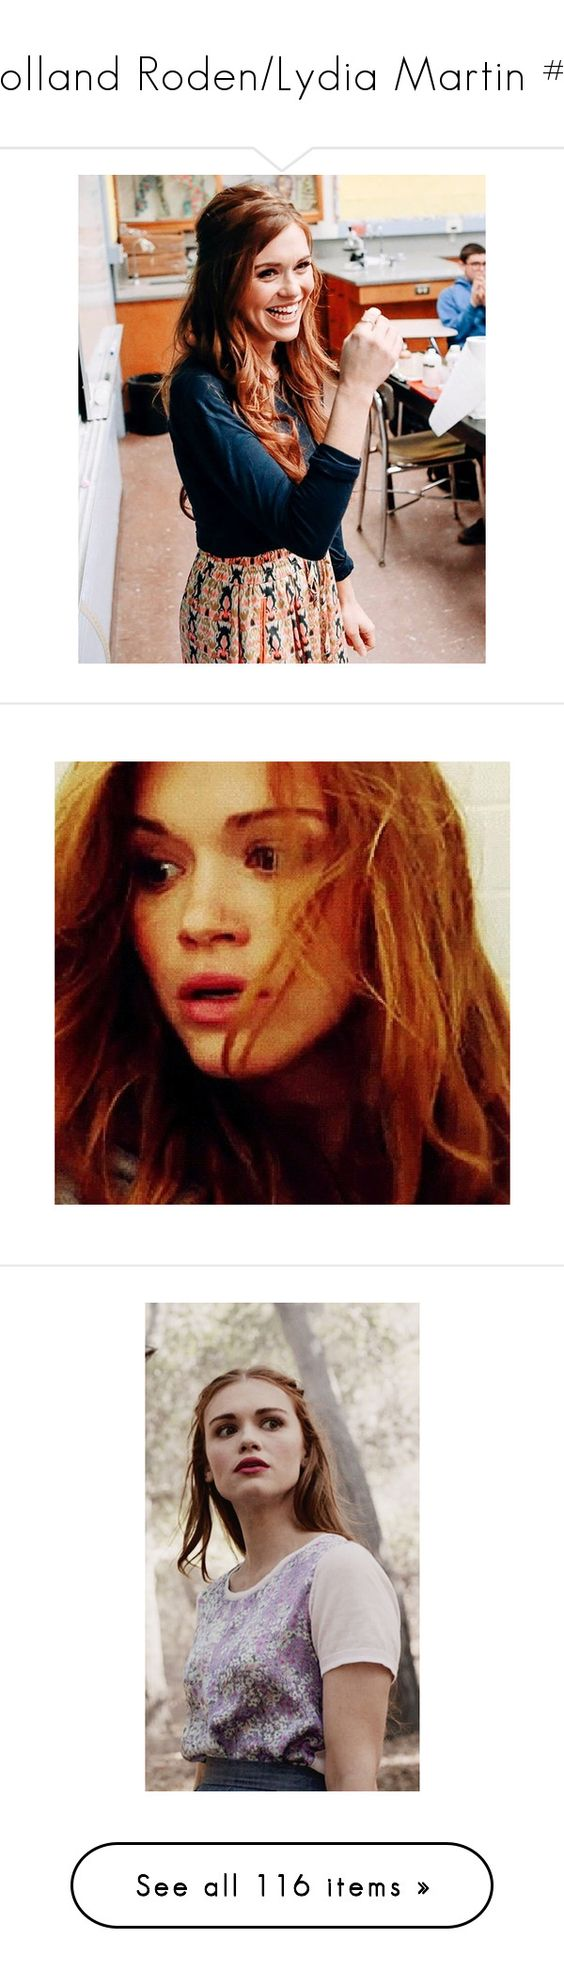 """""""Holland Roden/Lydia Martin #2"""" by nerdbucket ❤ liked on Polyvore featuring holland roden, teen wolf, people, holland, hair, celebrities, girls, home, home decor and models"""